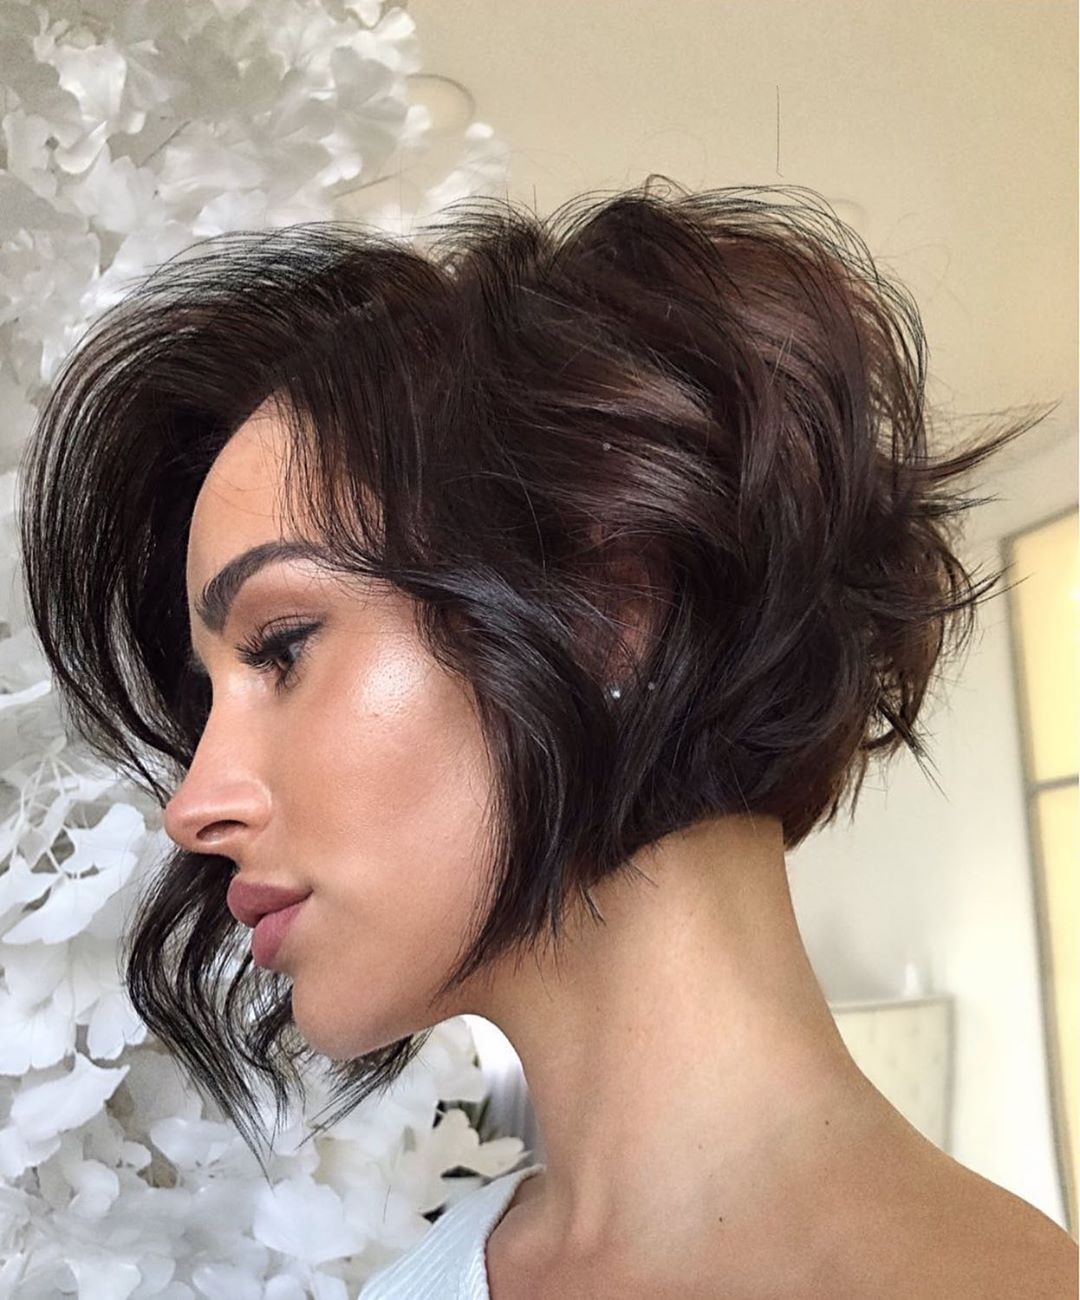 Trendy Jaw-Length Stacked Bob